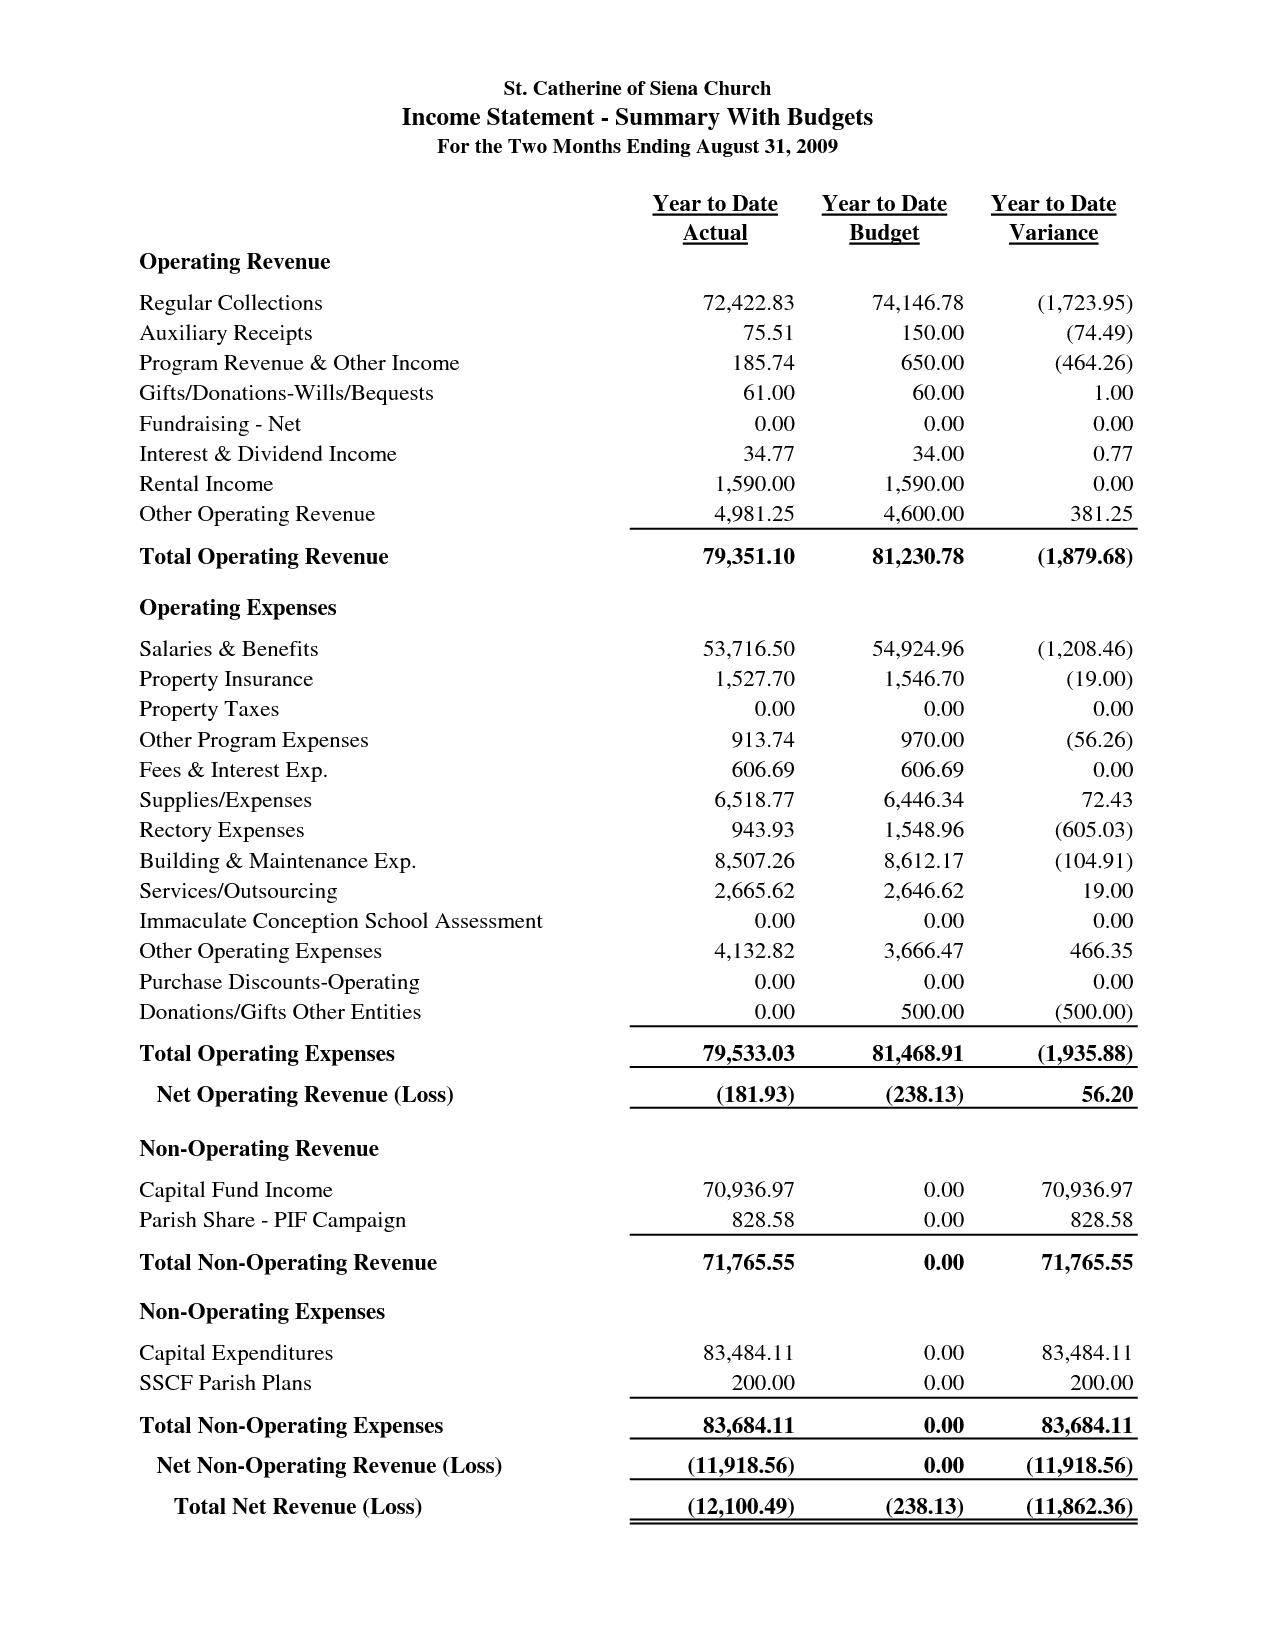 Income Statement Expense Examples